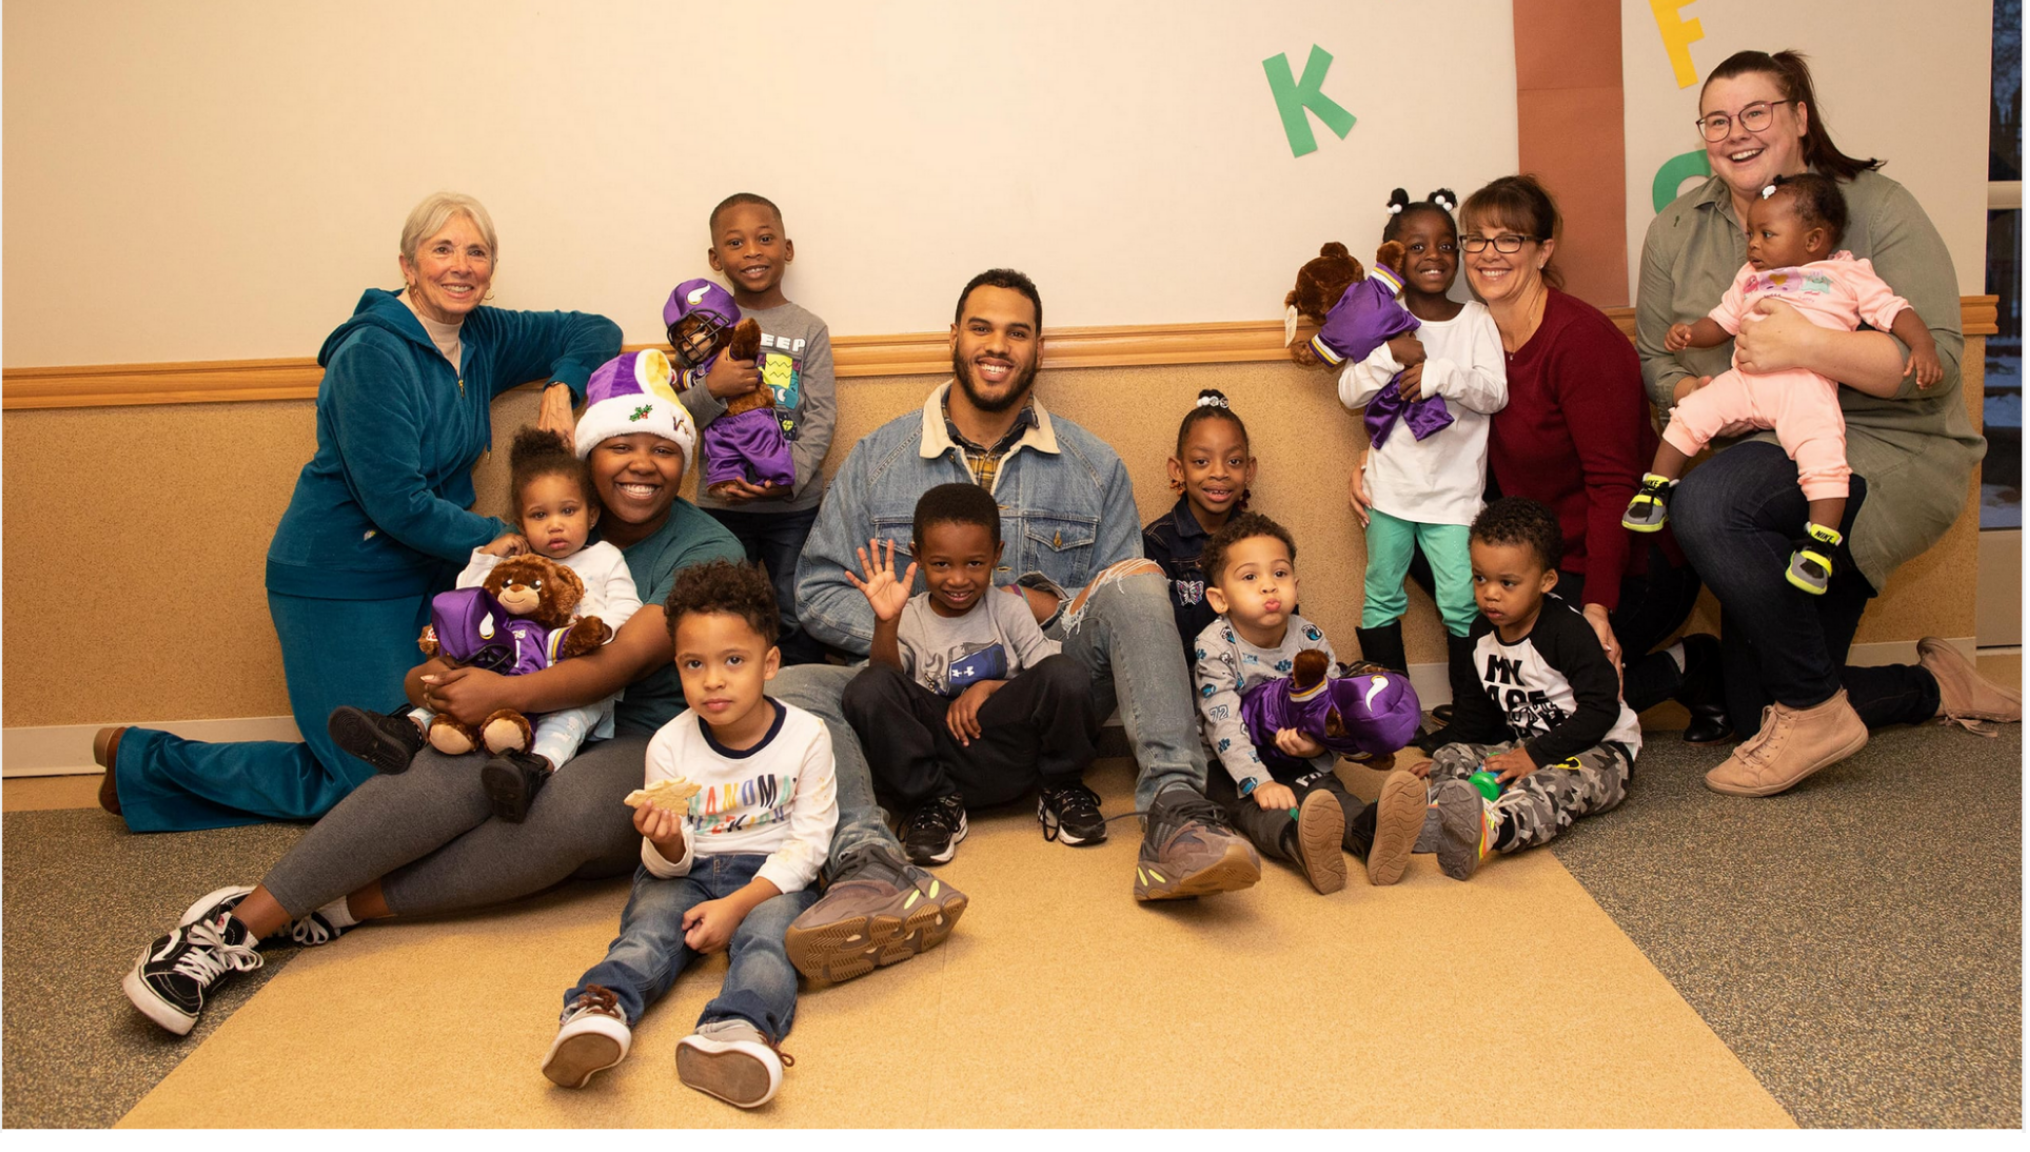 Anthony and Raise the Barr held a special holiday celebration for the families at Jeremiah Program in Minneapolis.   Check out photos and read more from the Vikings' coverage →